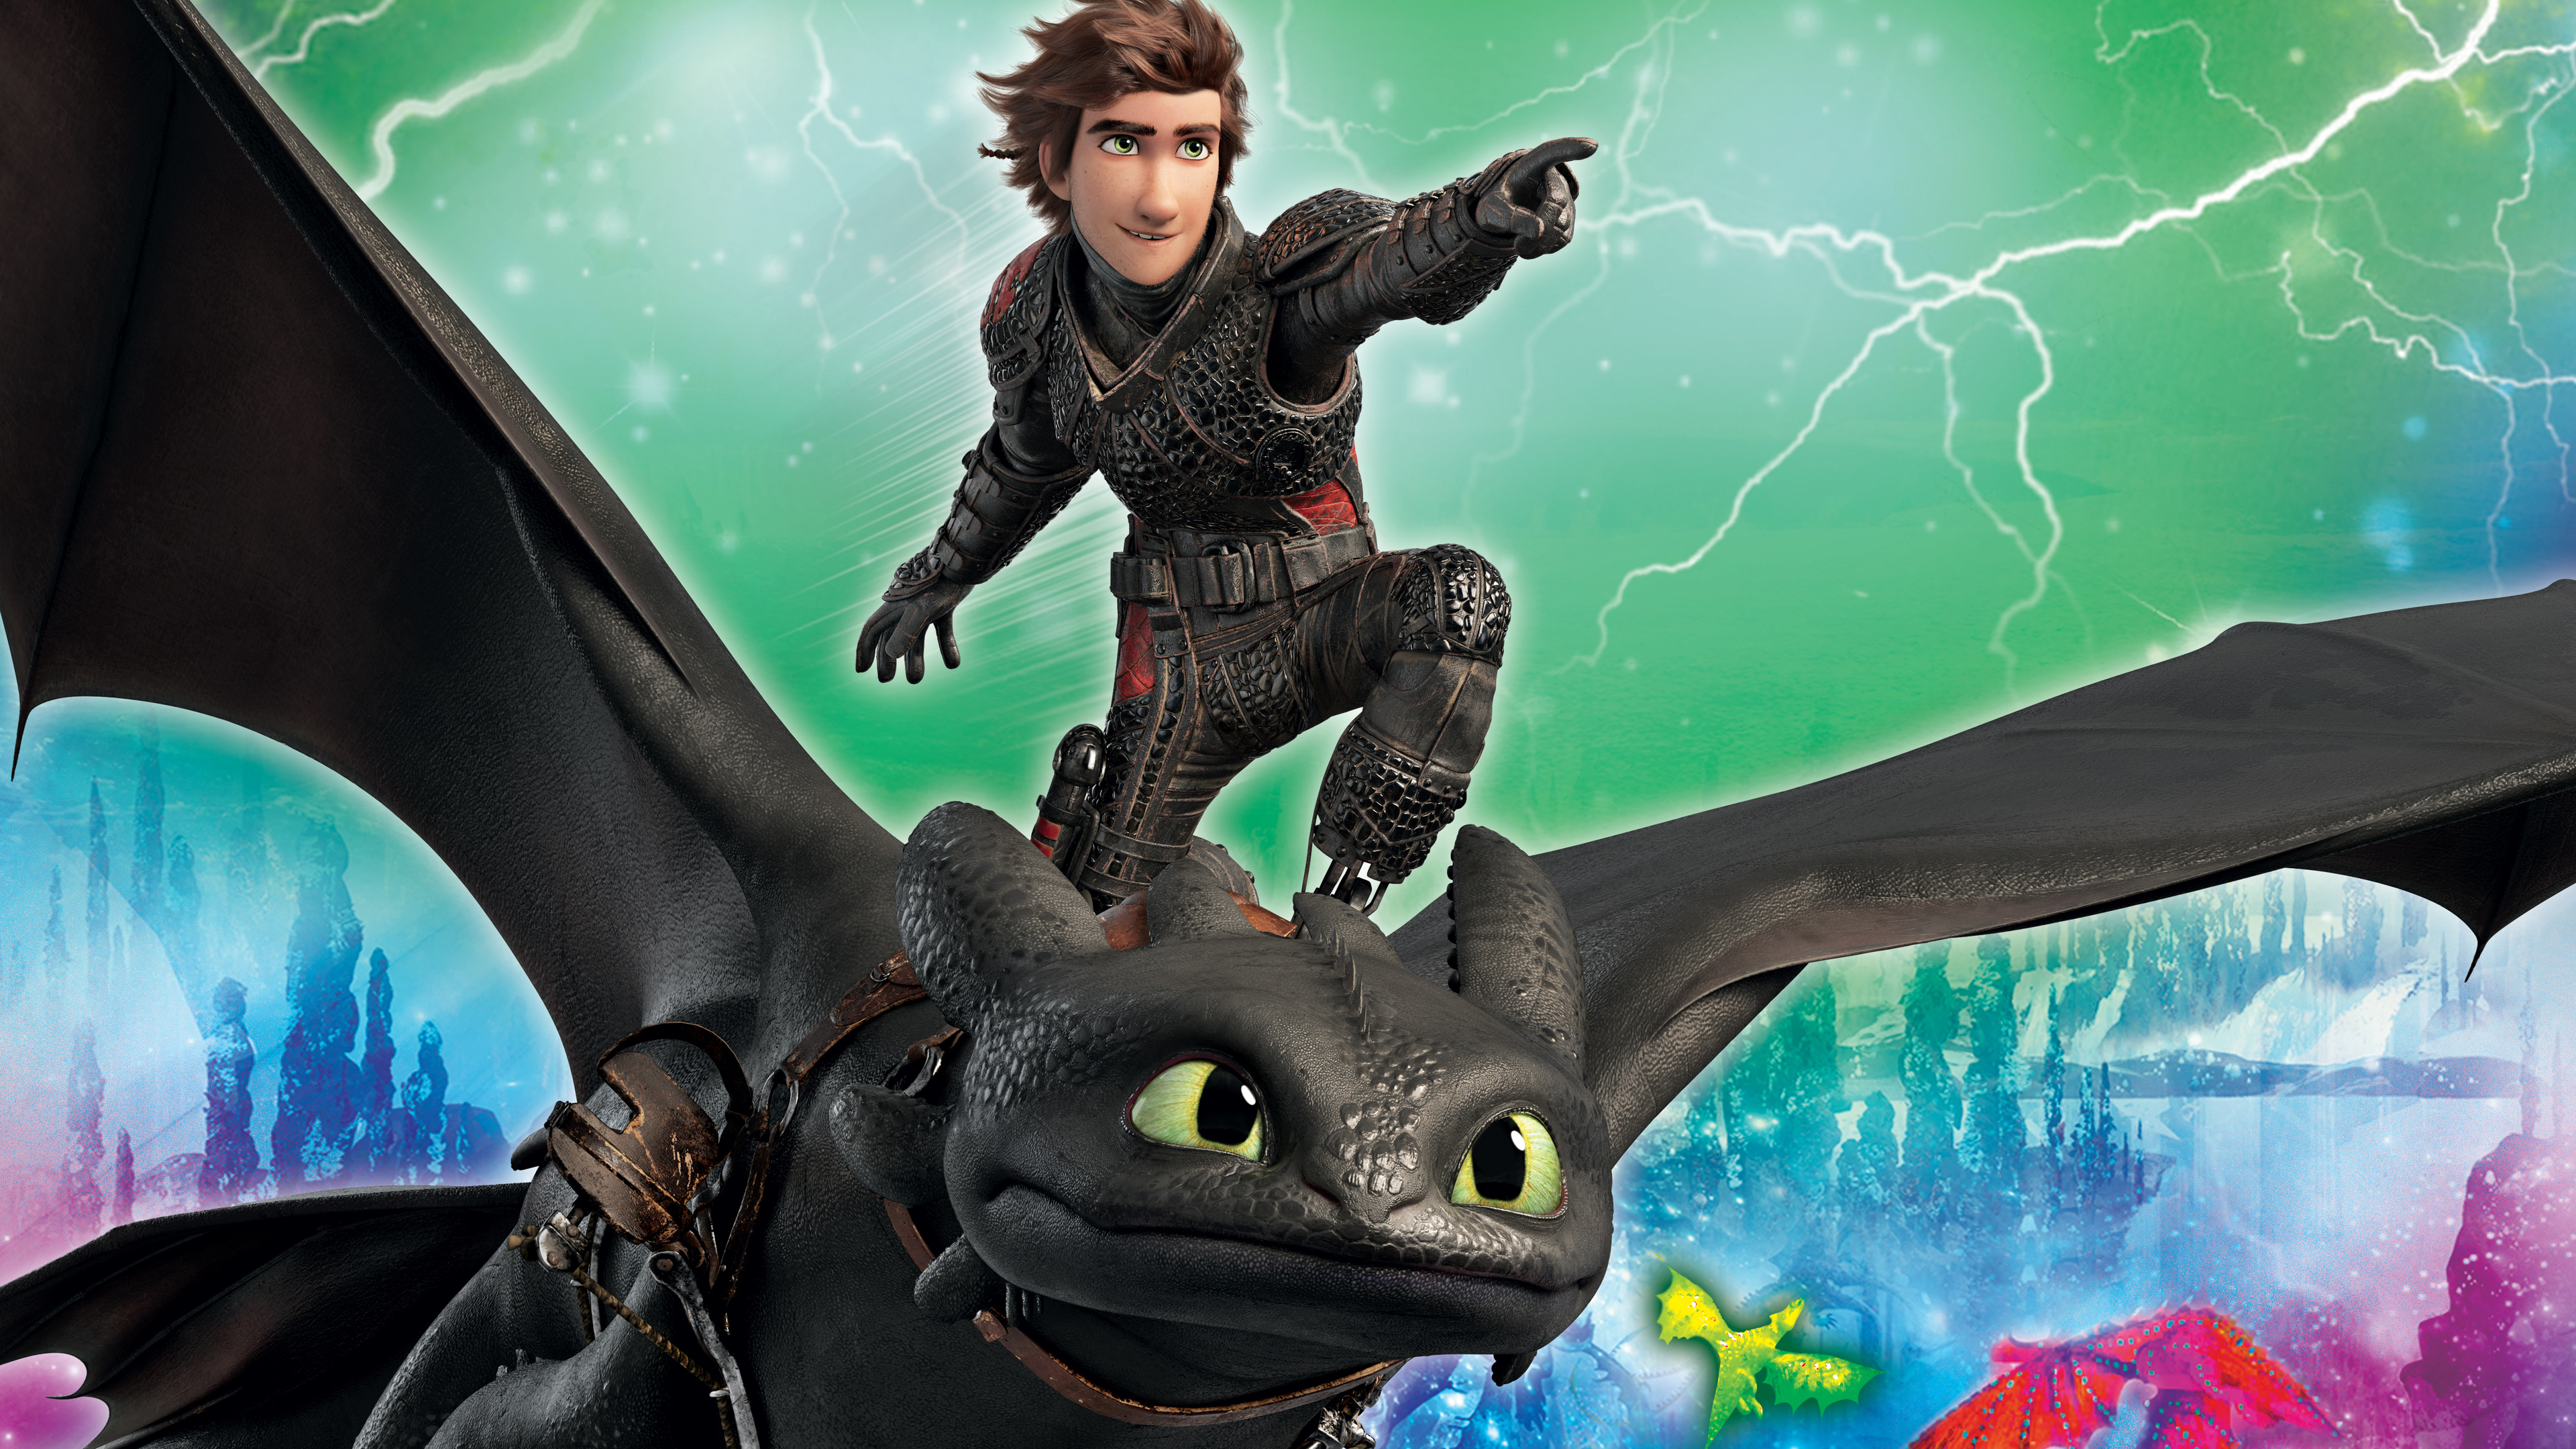 Wallpaper 4k How To Train Your Dragon 4k 2019 Movies Wallpapers